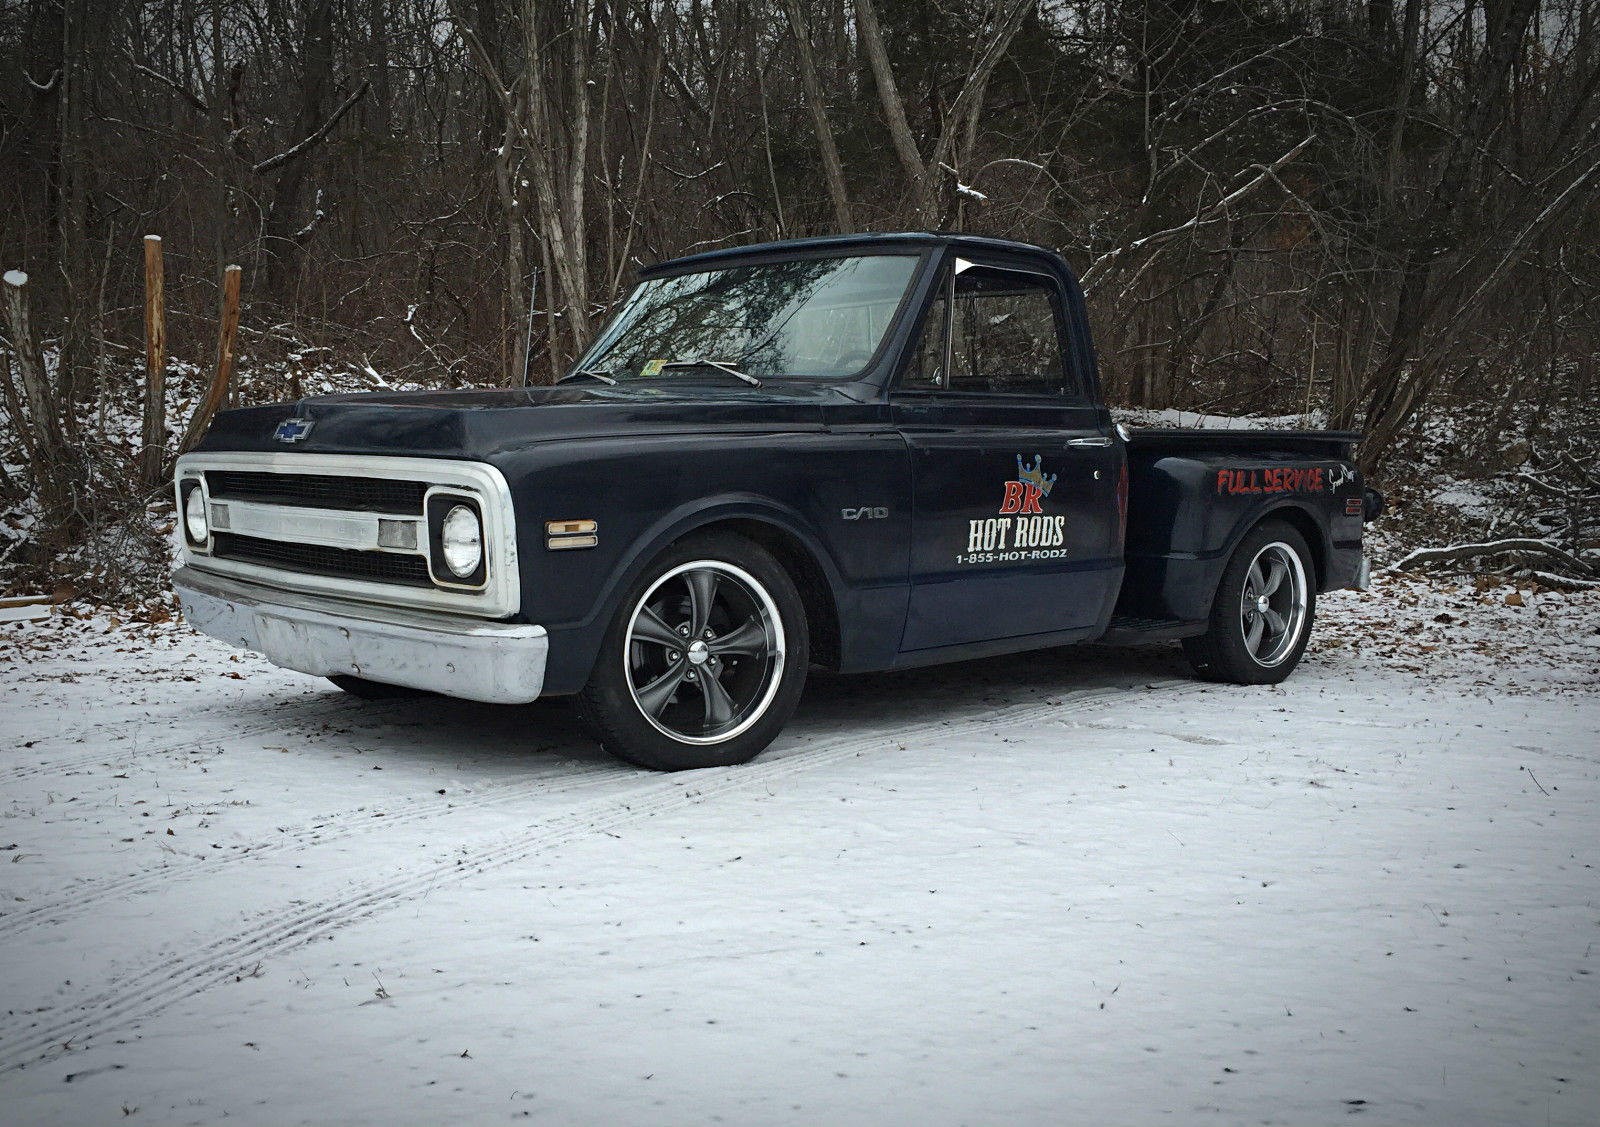 1969 Chevy C10 Short Bed Lowered Shop Truck With Pin Striping 1970 Ford Chevrolet C 10